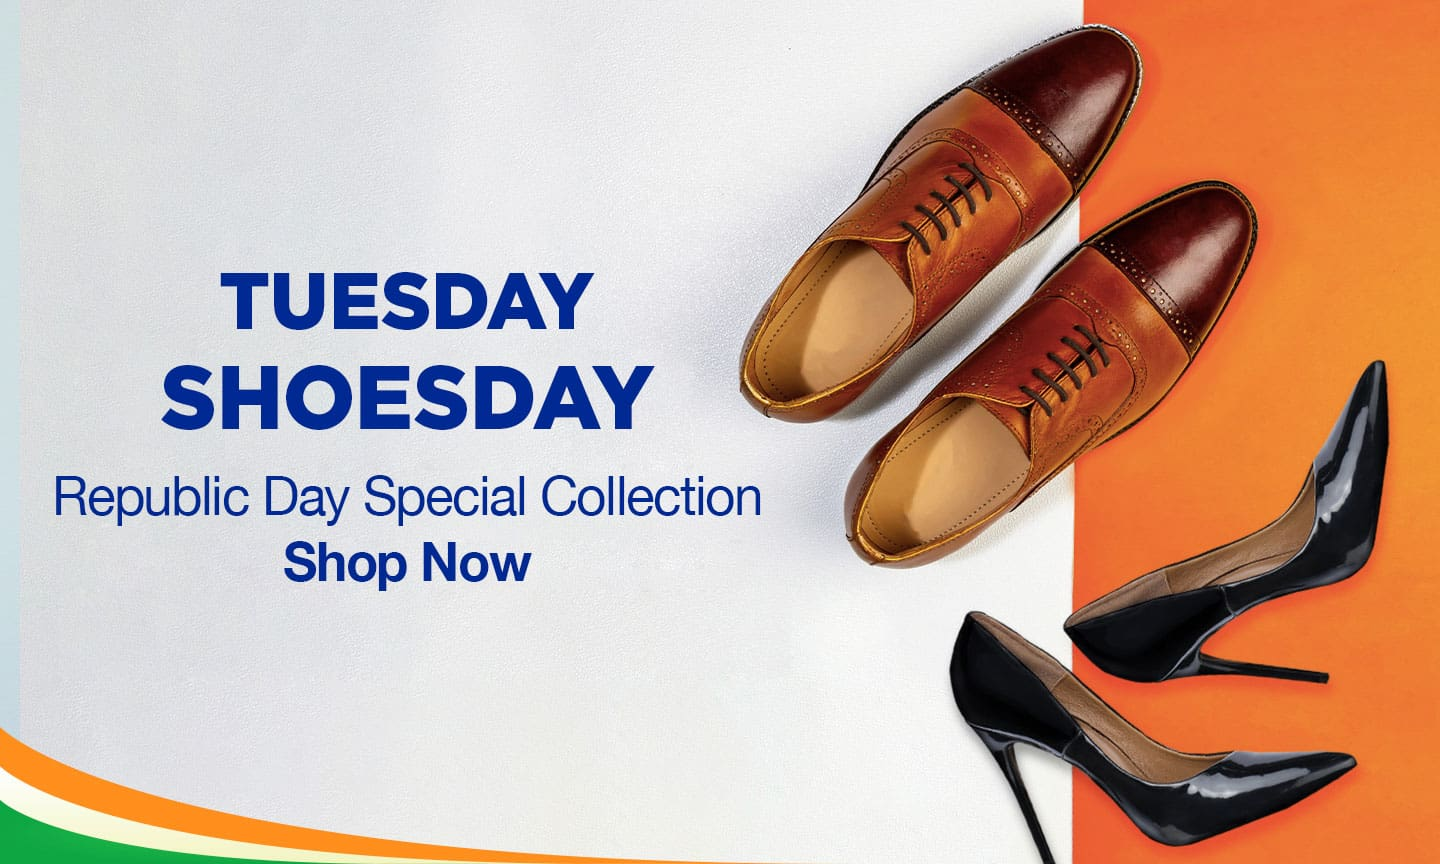 Tuesday Shoesday | Republic Day Special